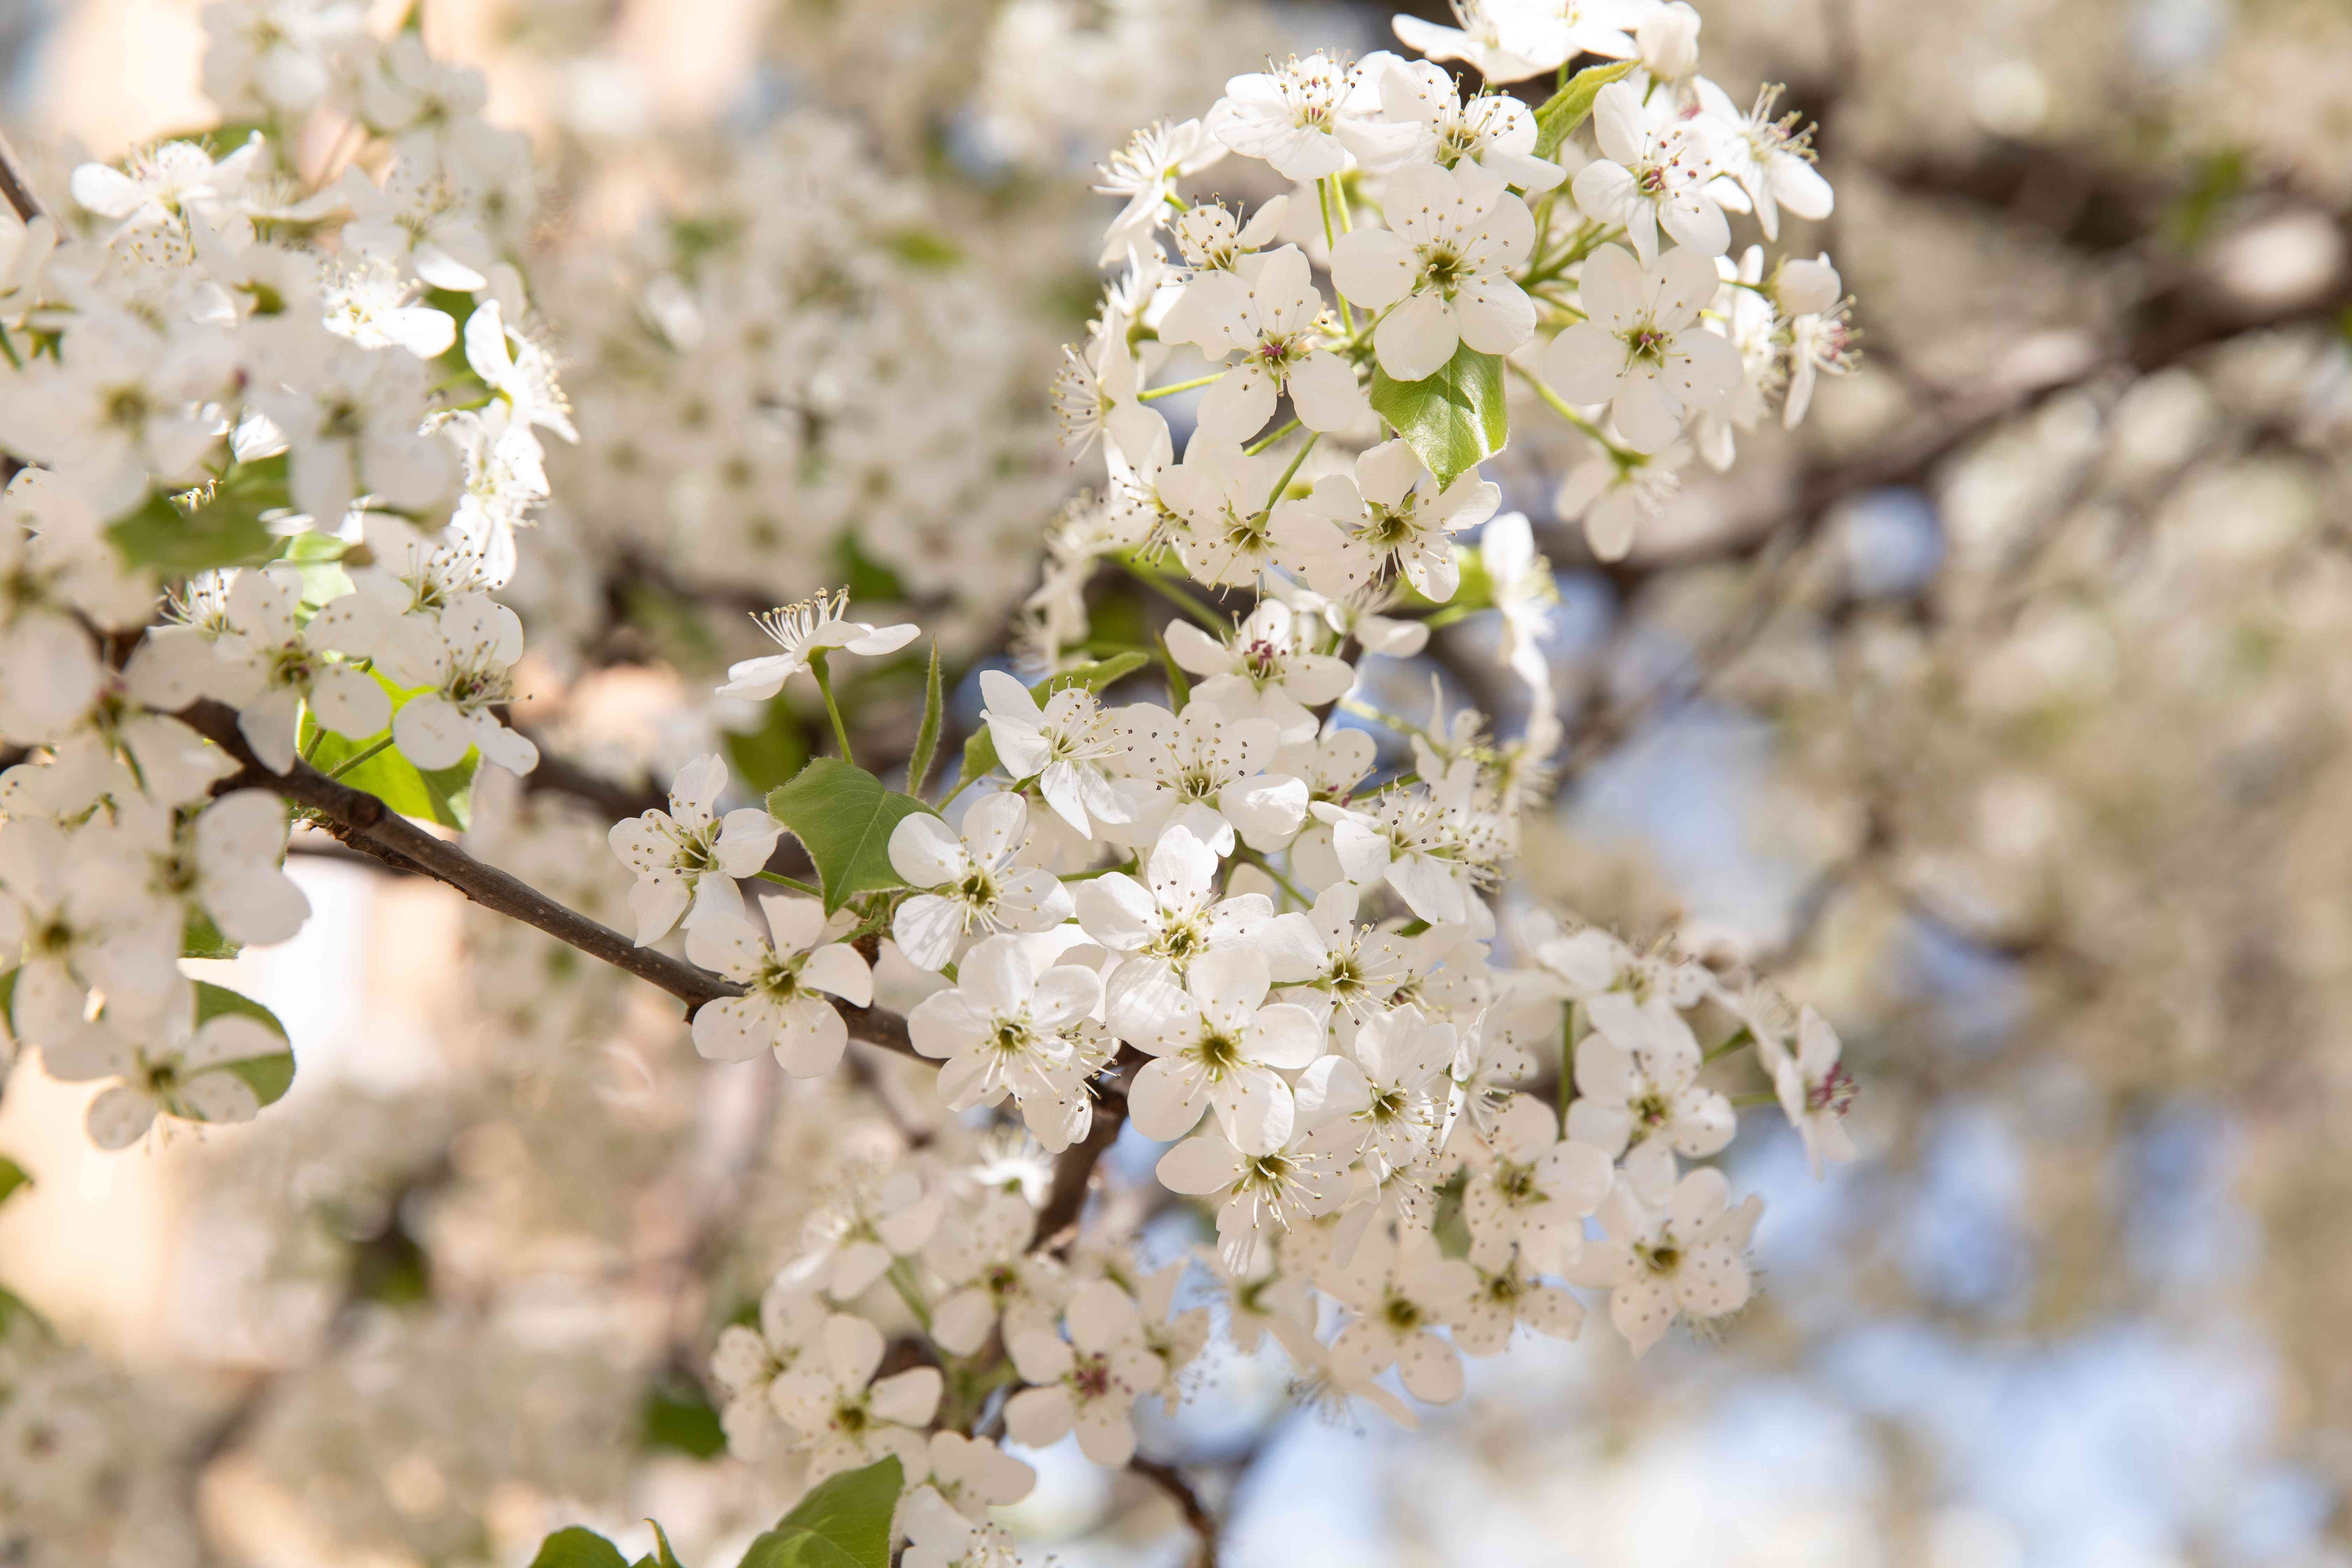 Calley pear tree blossoms with small white flowers closeup